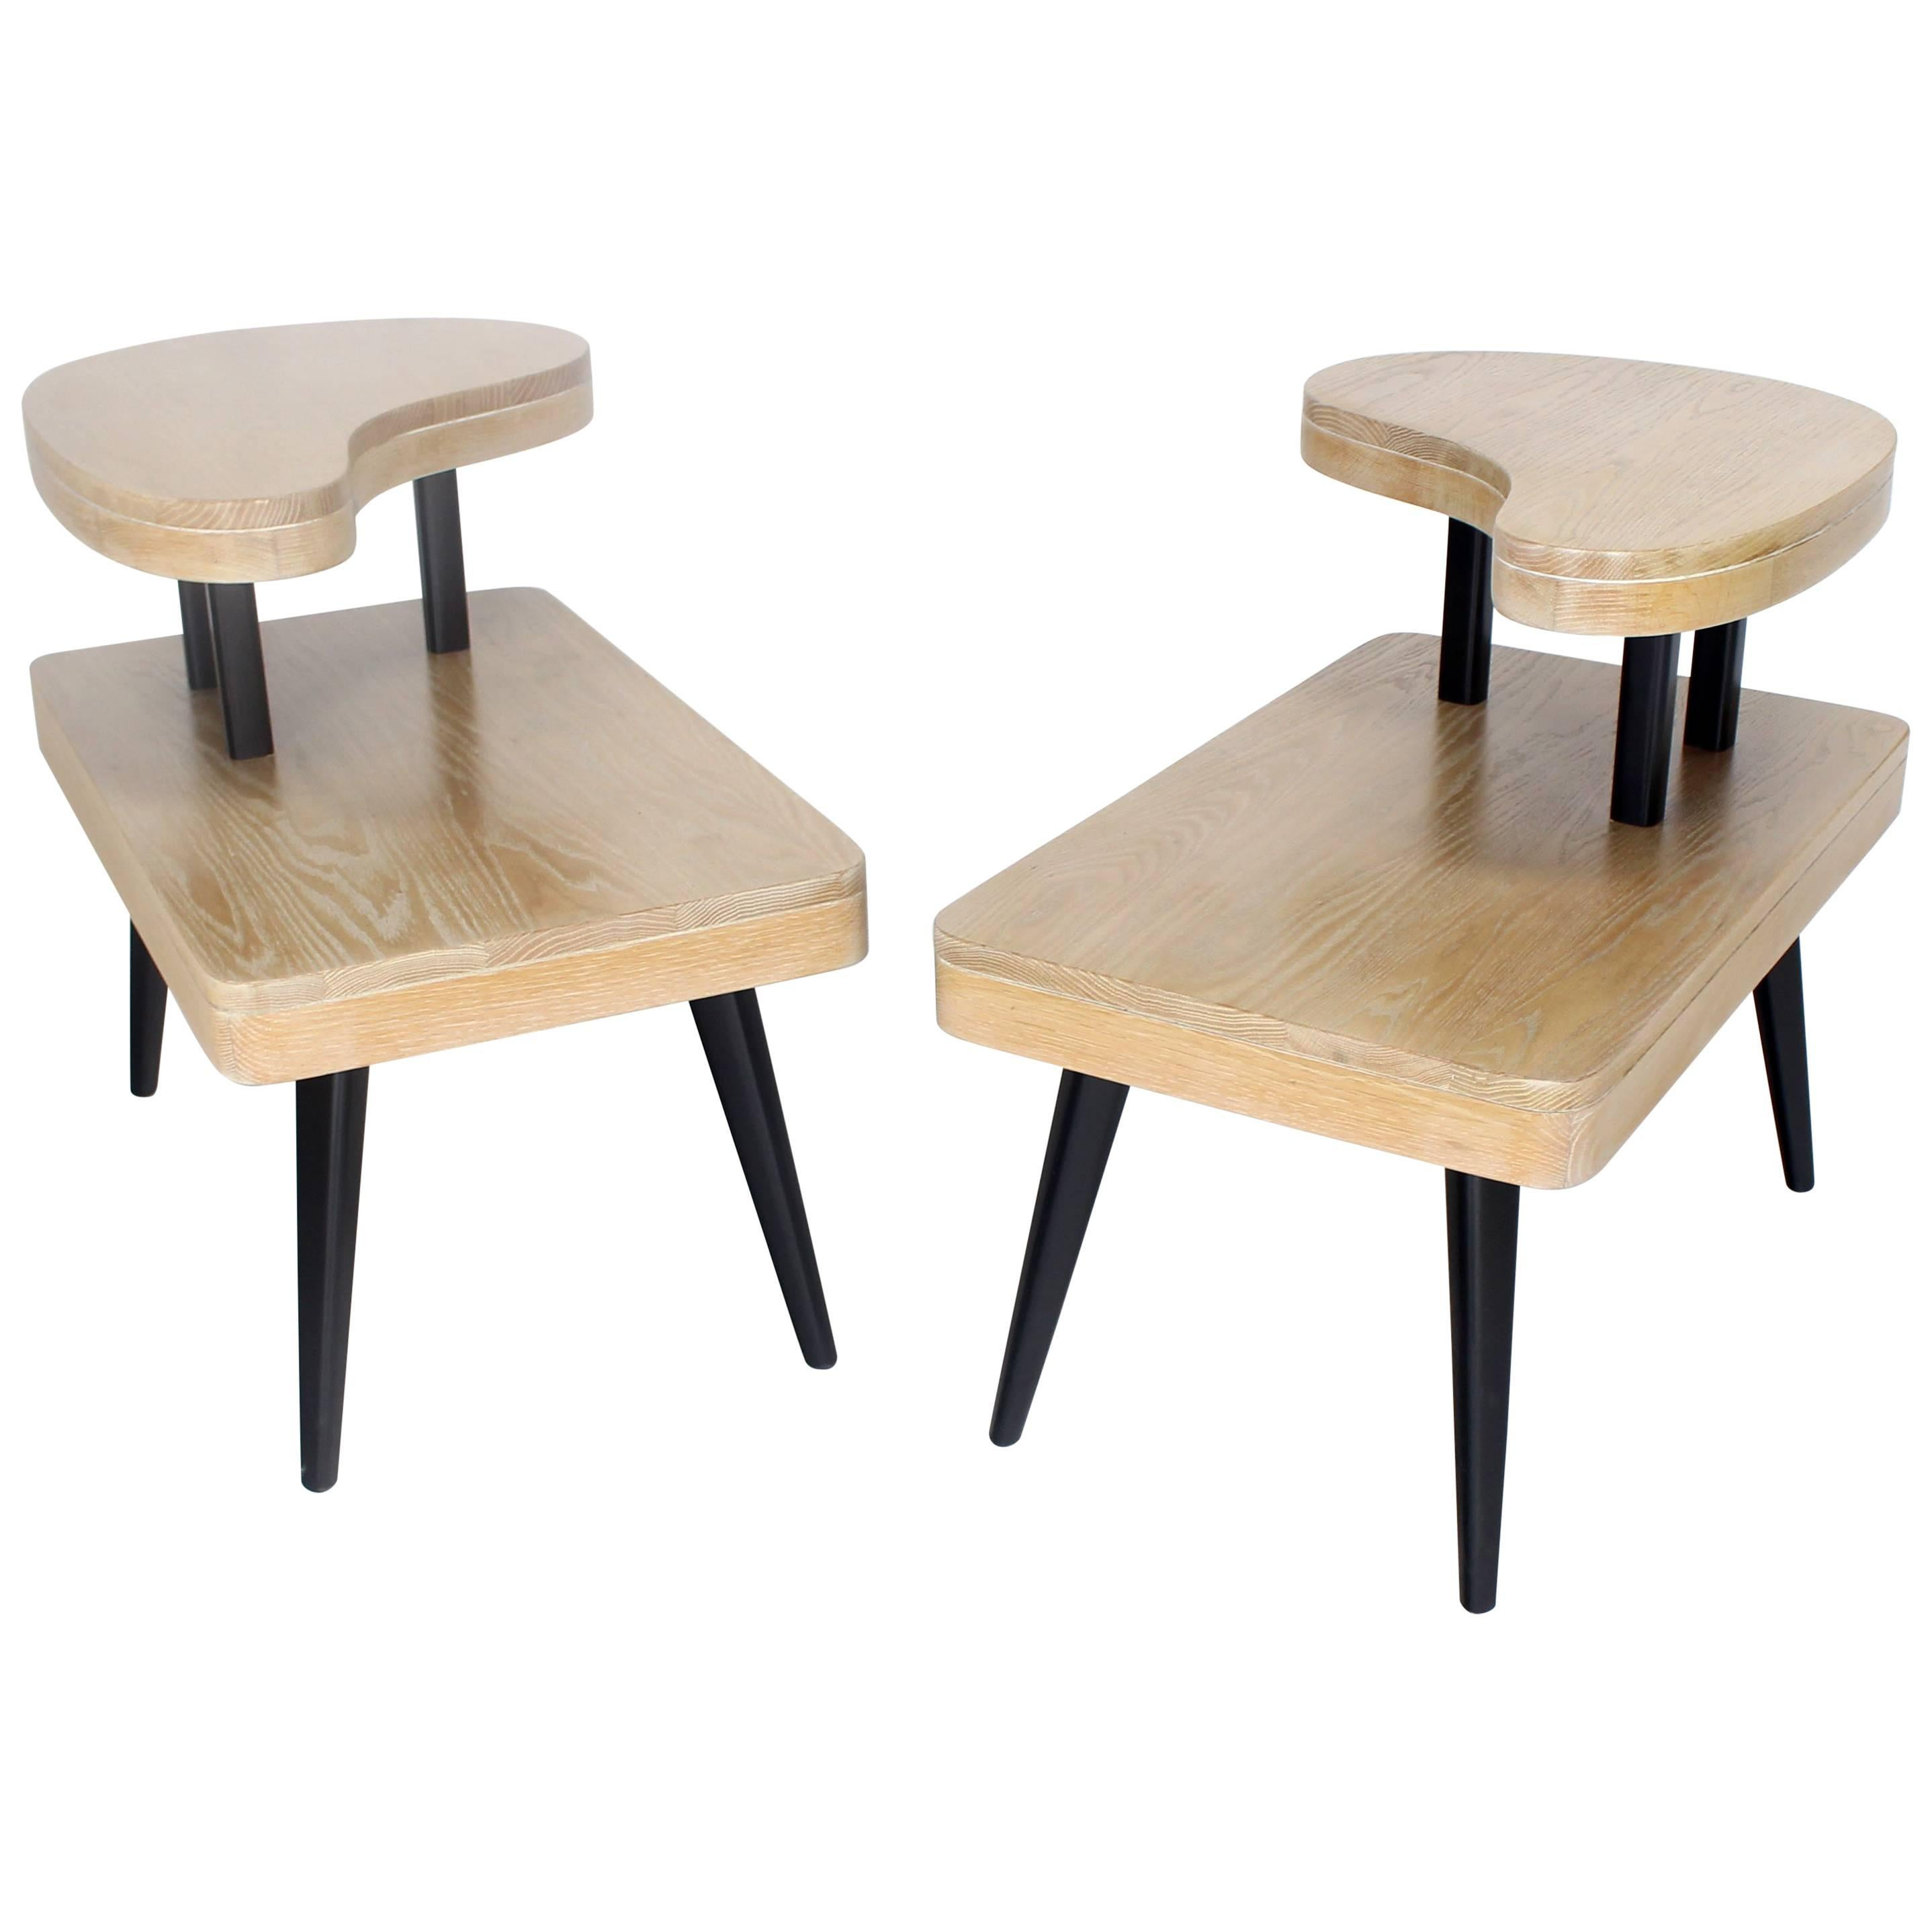 Cerused Oak Two-Tier Mid-Century Modern Organic Two-Tone End Tables Stands, Pair